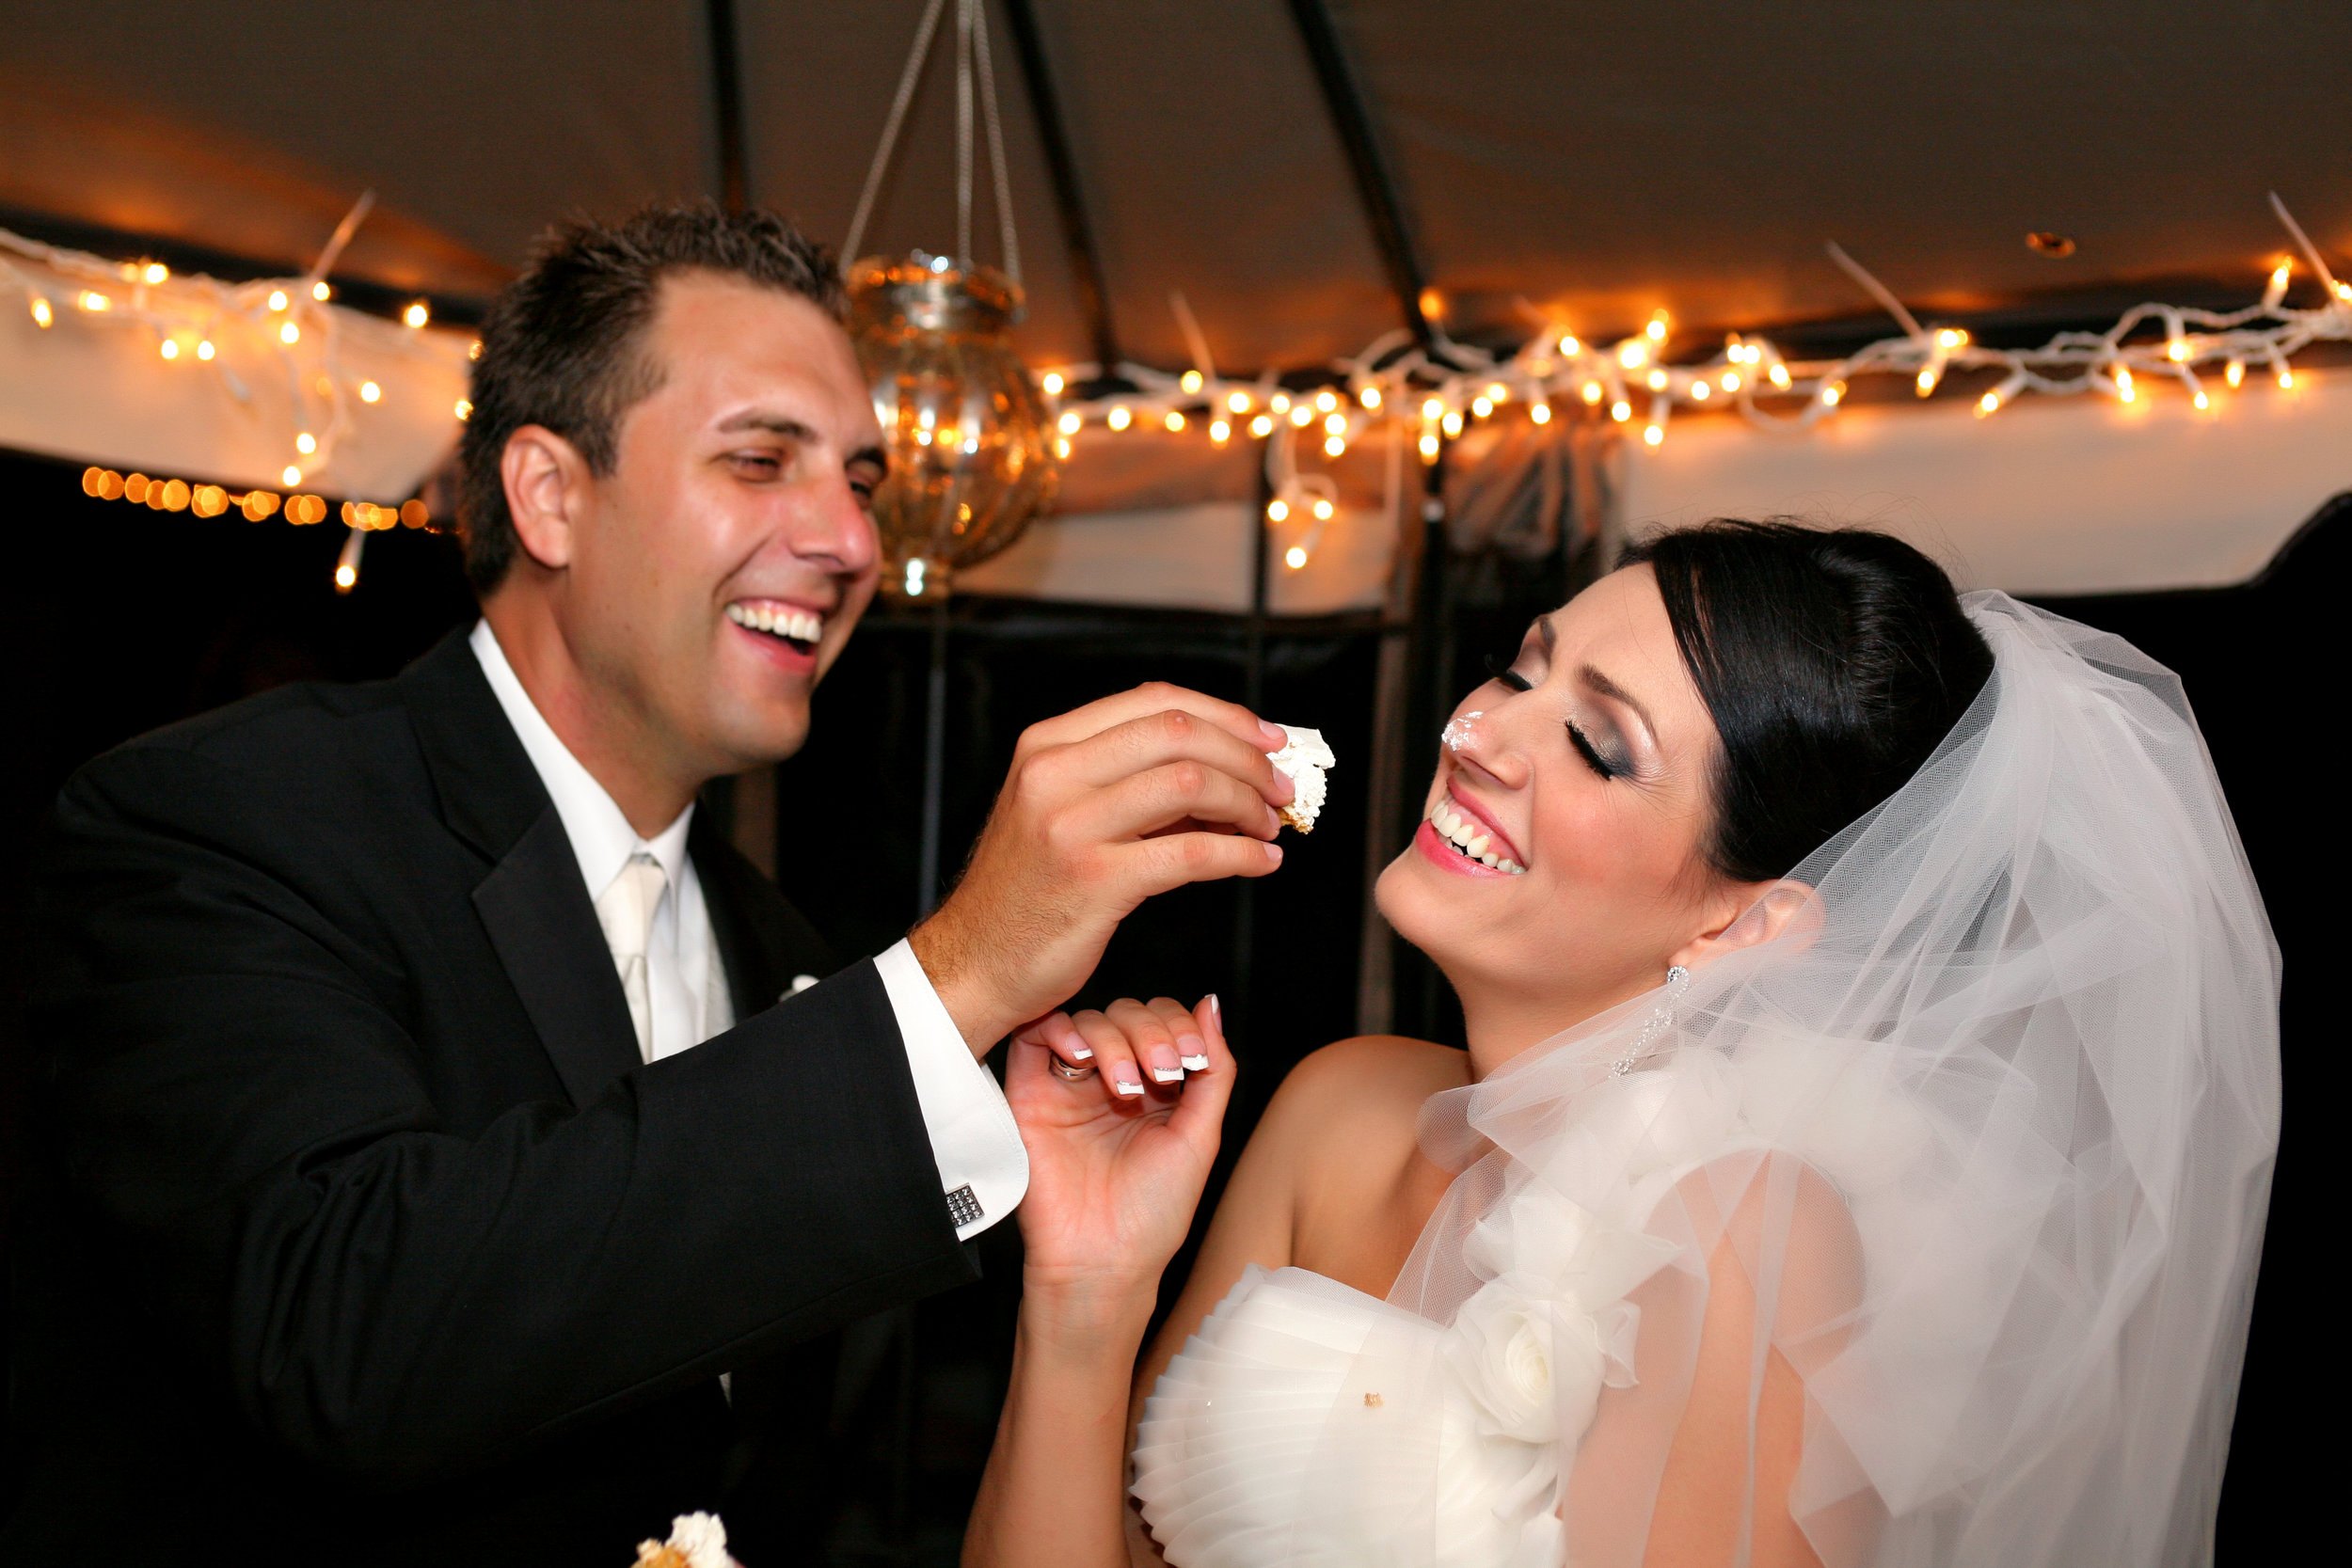 ShadowcatcherGalleryOne_SanDiegoWeddingPhotogrpaher_098.jpg